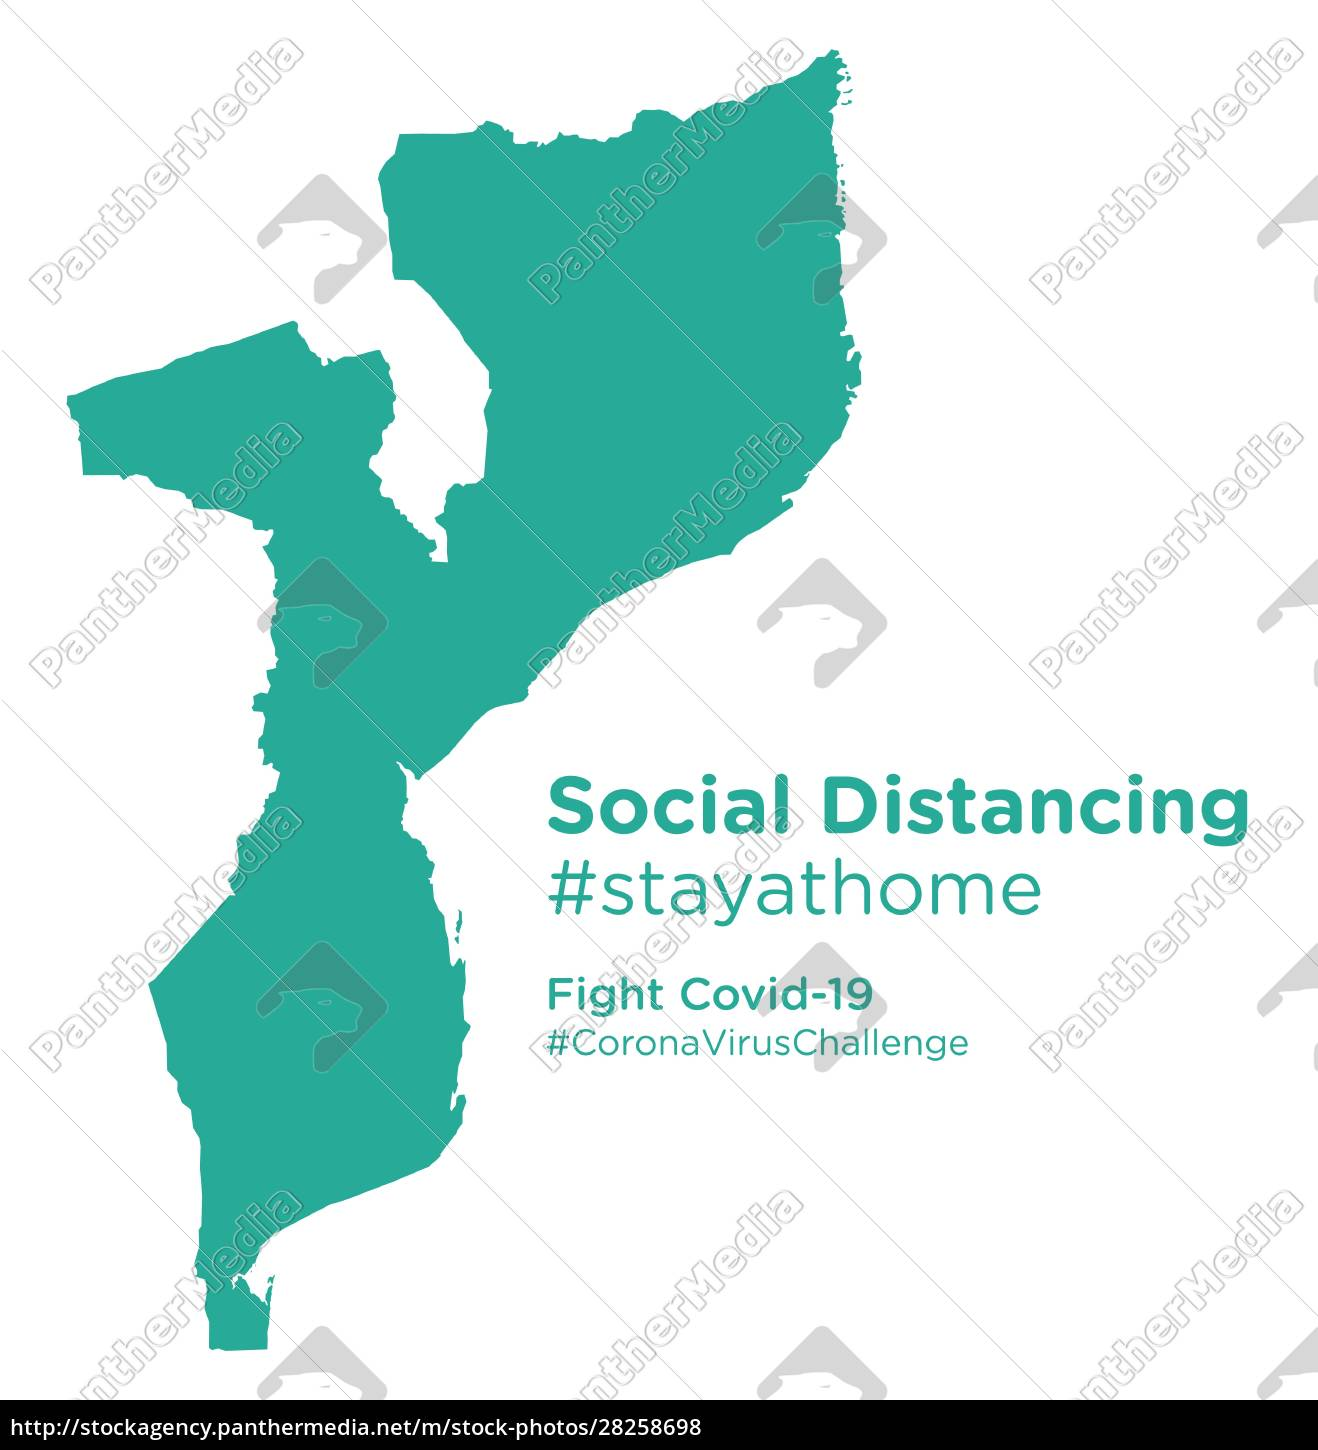 mozambique, map, with, social, distancing, stayathome - 28258698